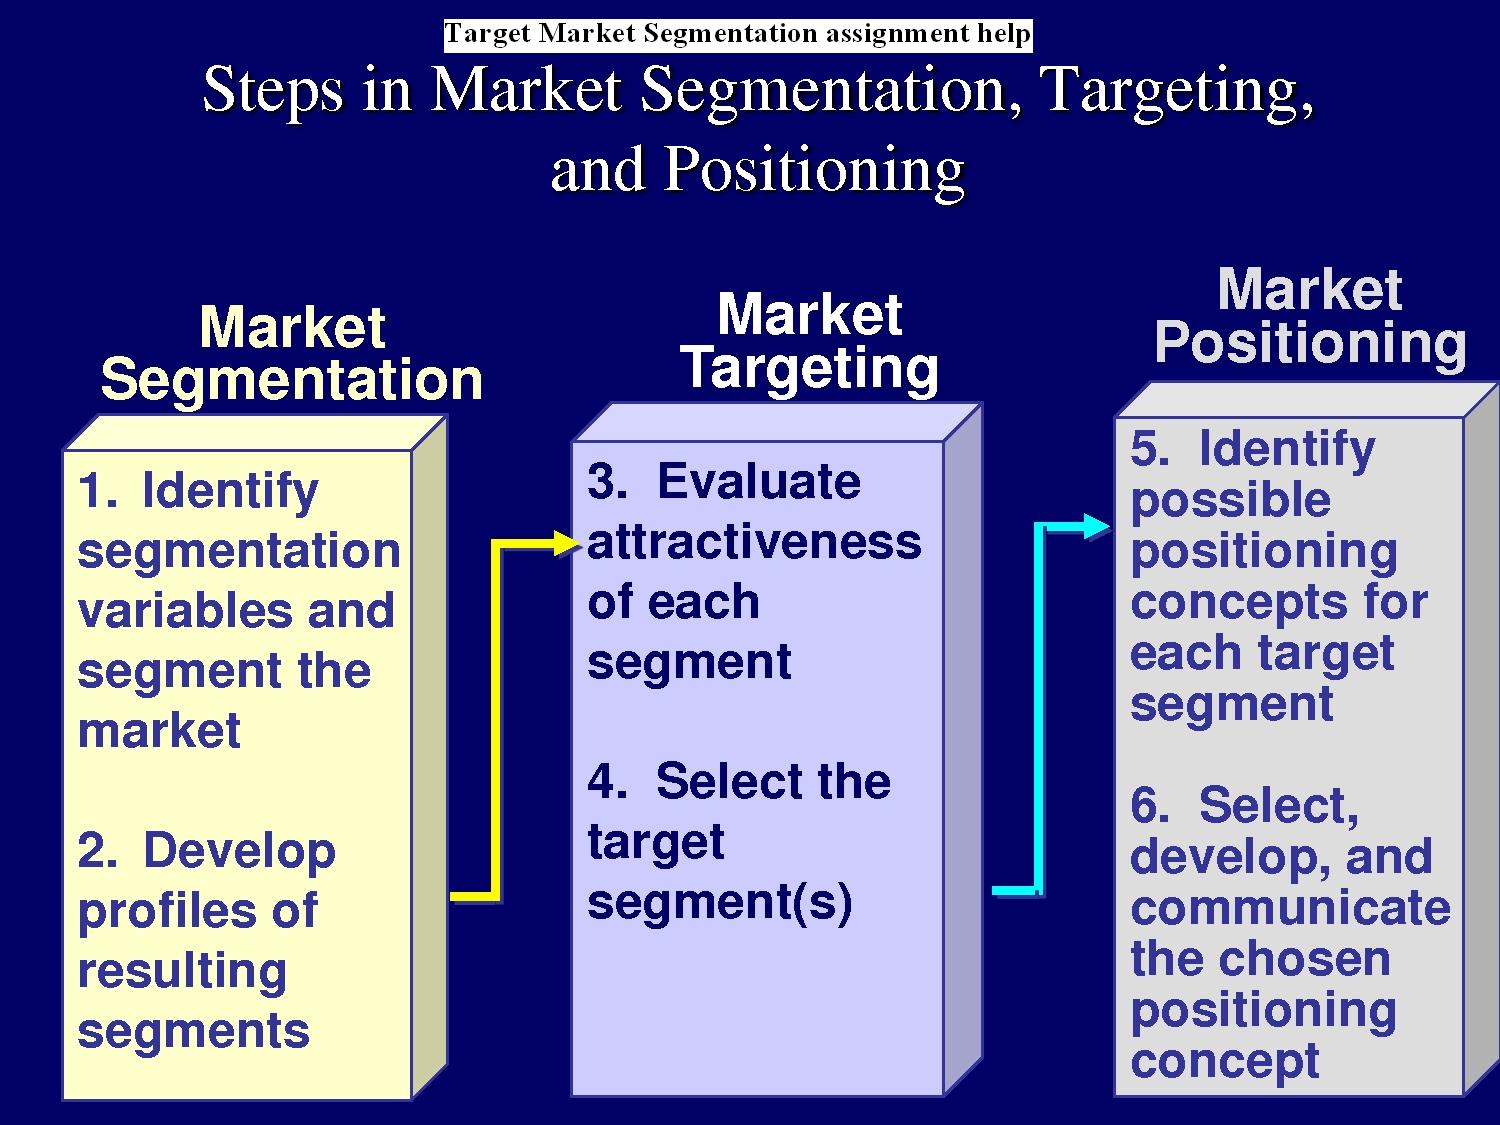 market segmentation targeting positioning Self-assessment questions try the self-assessment questions below to test your knowledge of this chapter once you have completed the test, click on 'submit answers for grading' to get your results.